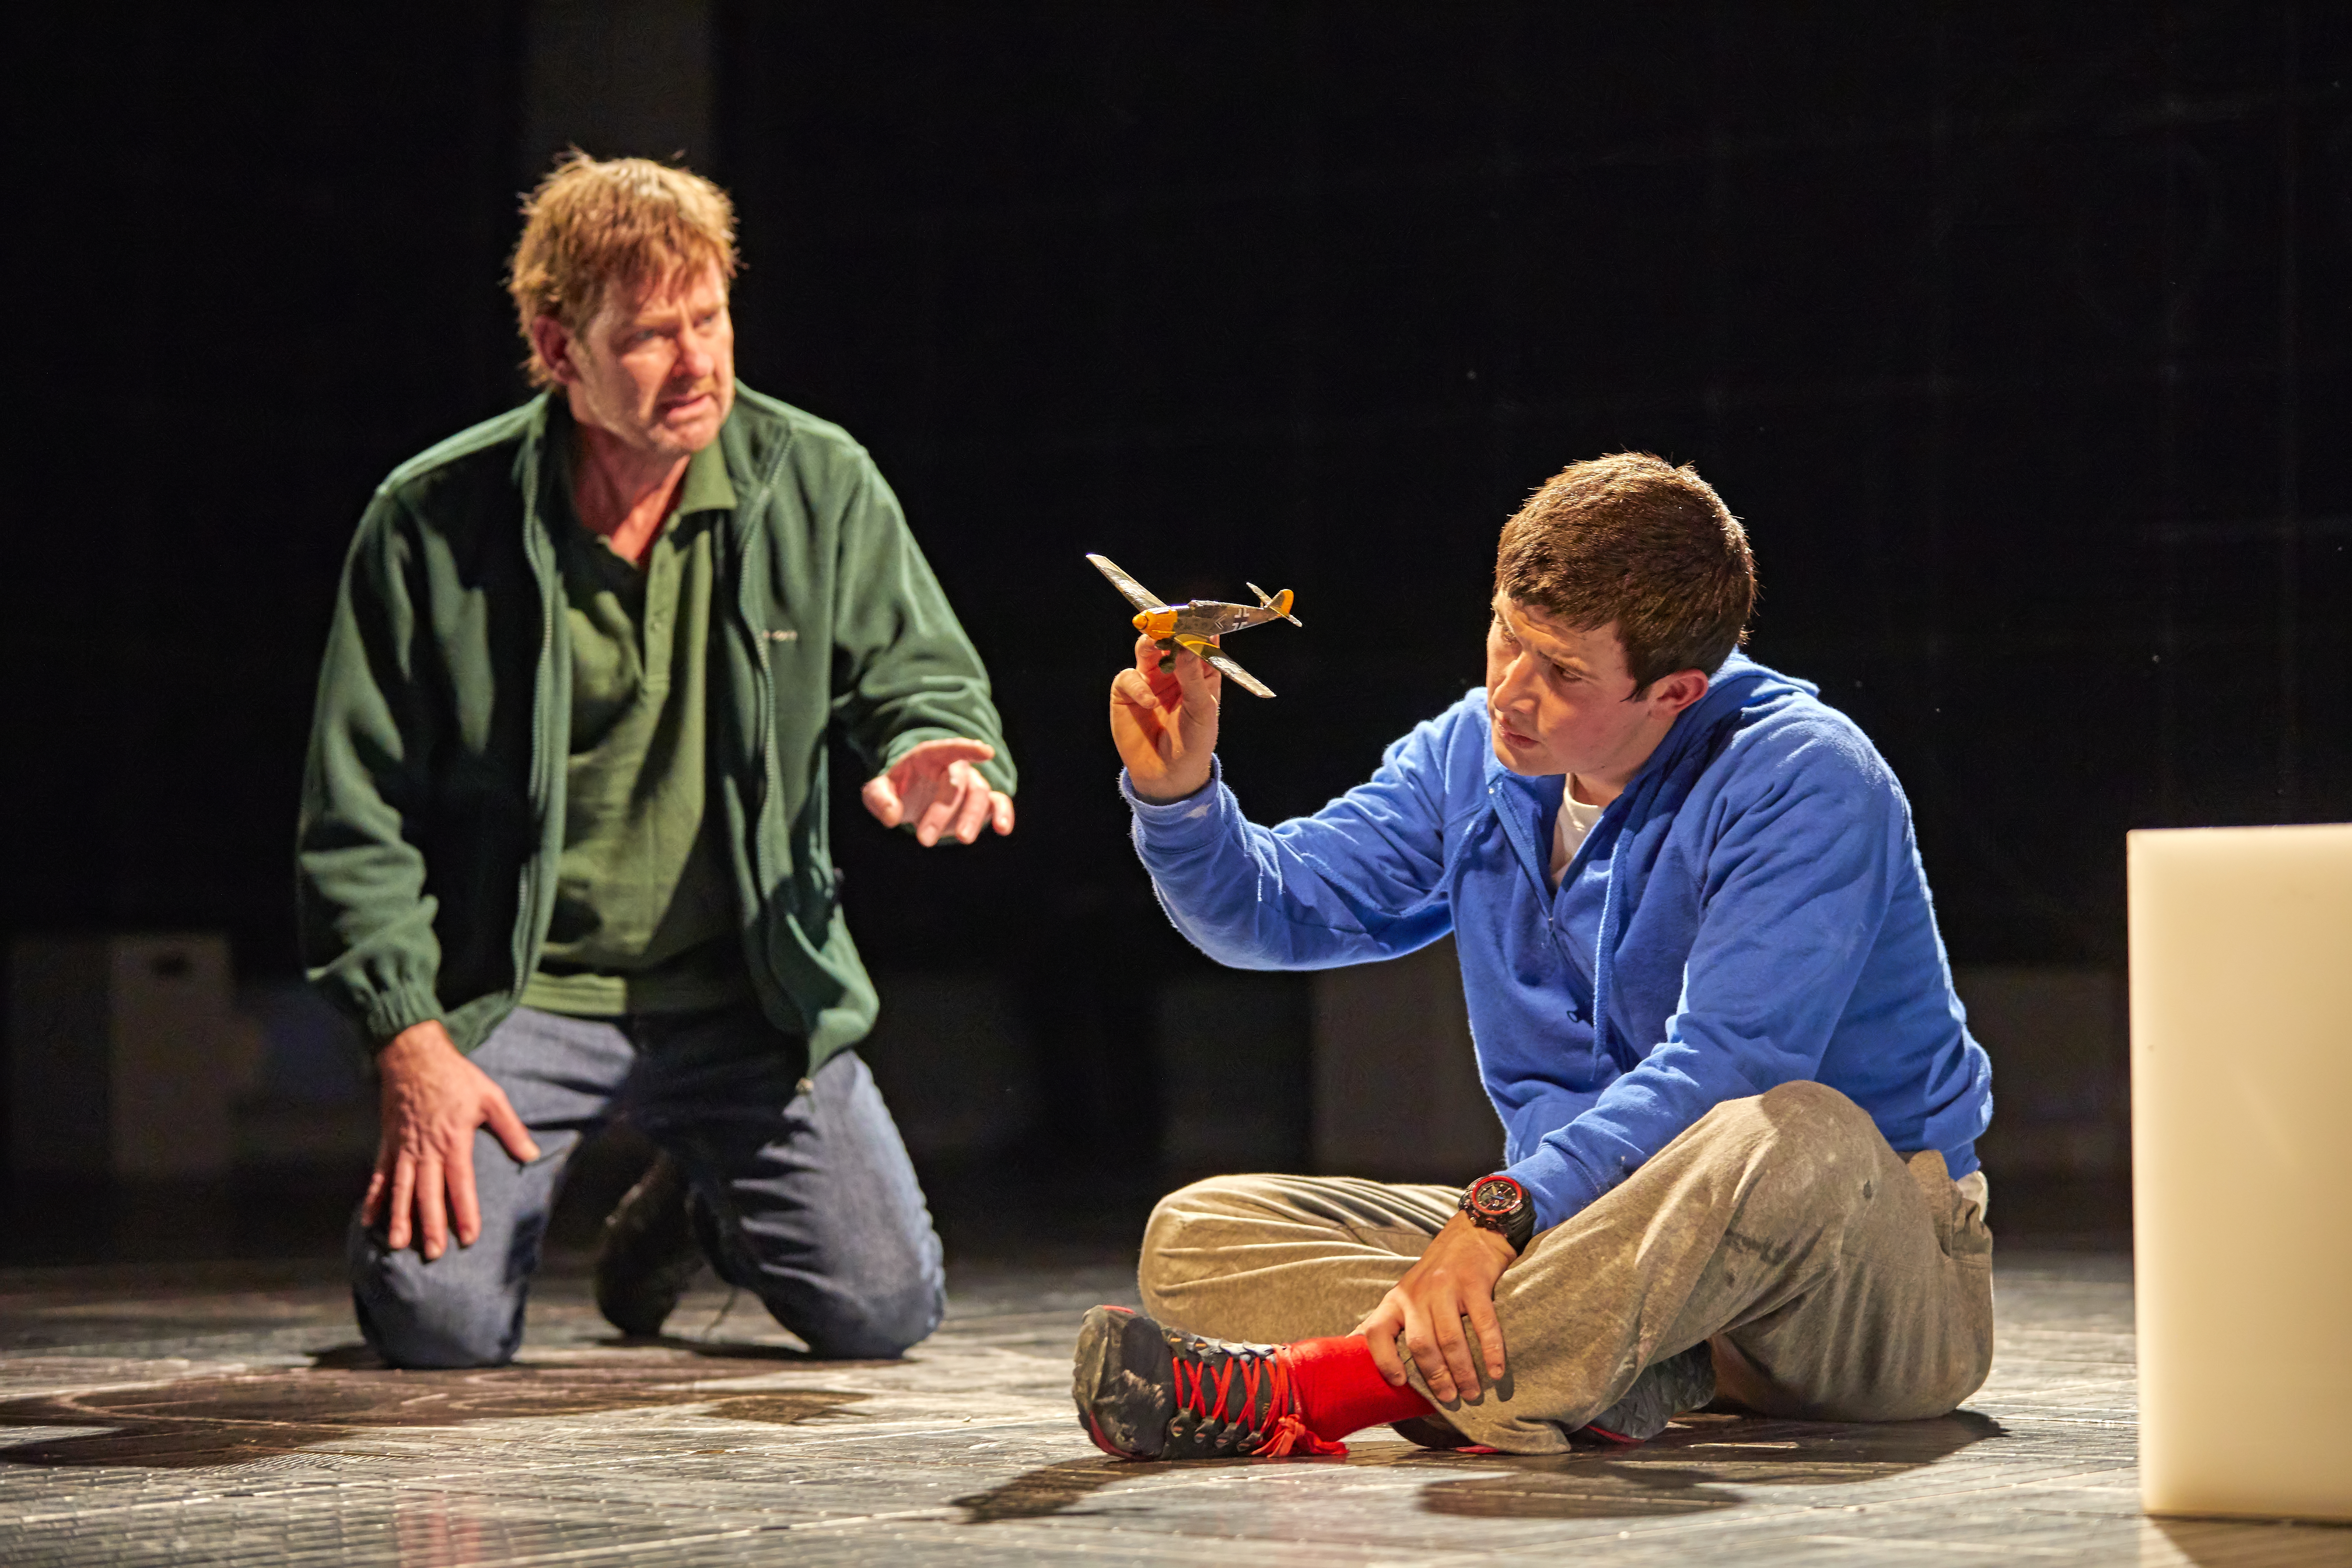 David Michaels as Ed and Scott Reid as Christopher Boone in the National Theatre production of The Curious Incident of the Dog in the Night-Time.